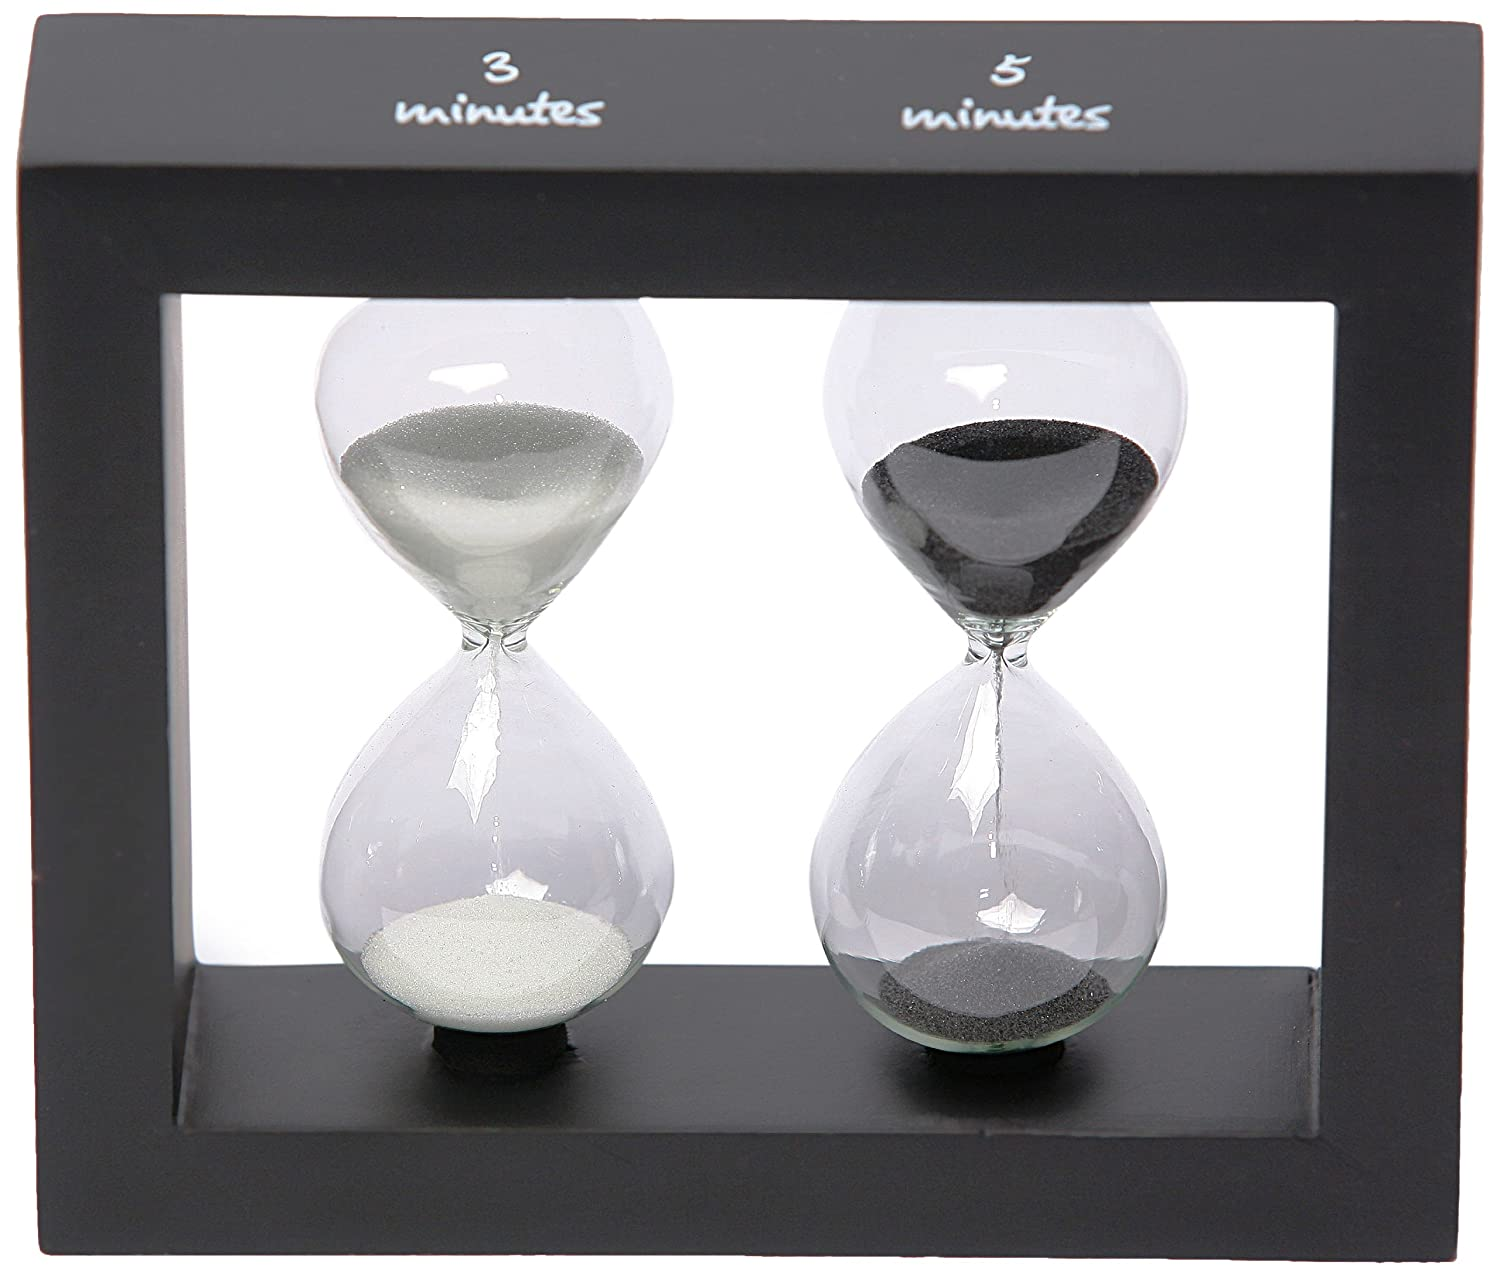 G.W. Schleidt STW1218-B 3 and 5 Minute Egg and Tea Timer - Black Frame